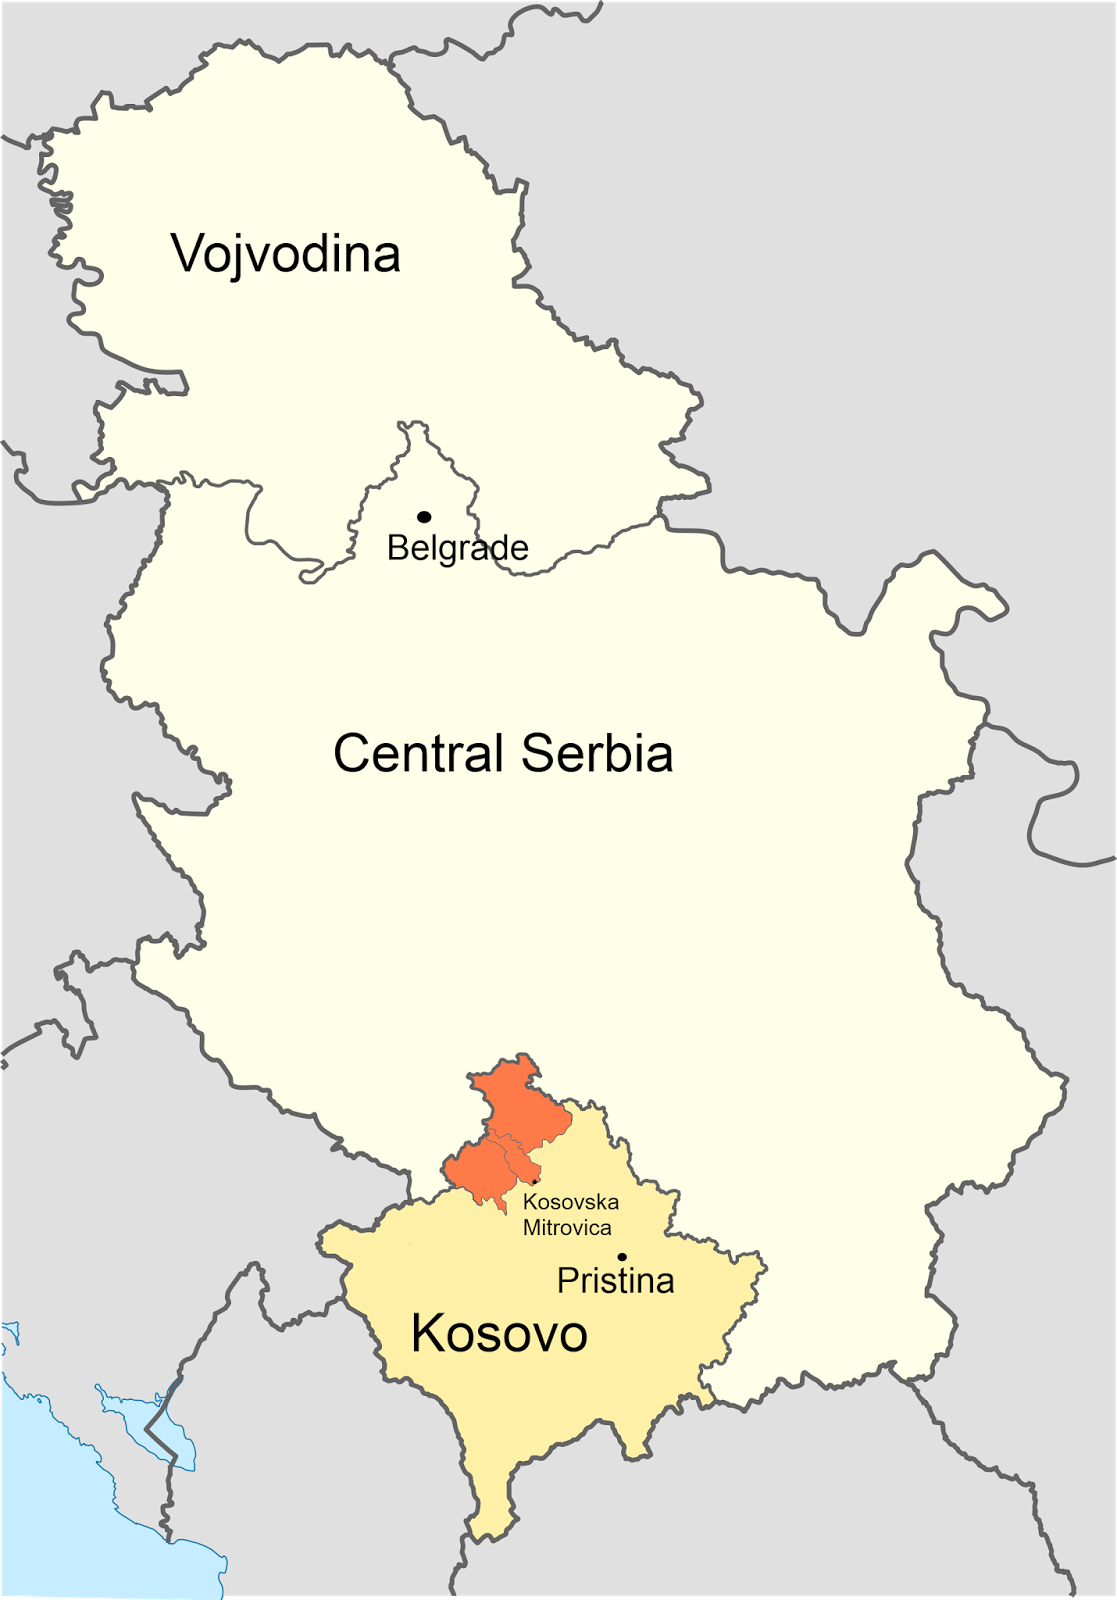 kosovo is a territory within the borders of serbia but it has declared independence from serbia in 2008 and is recognized as a separate nation by 112